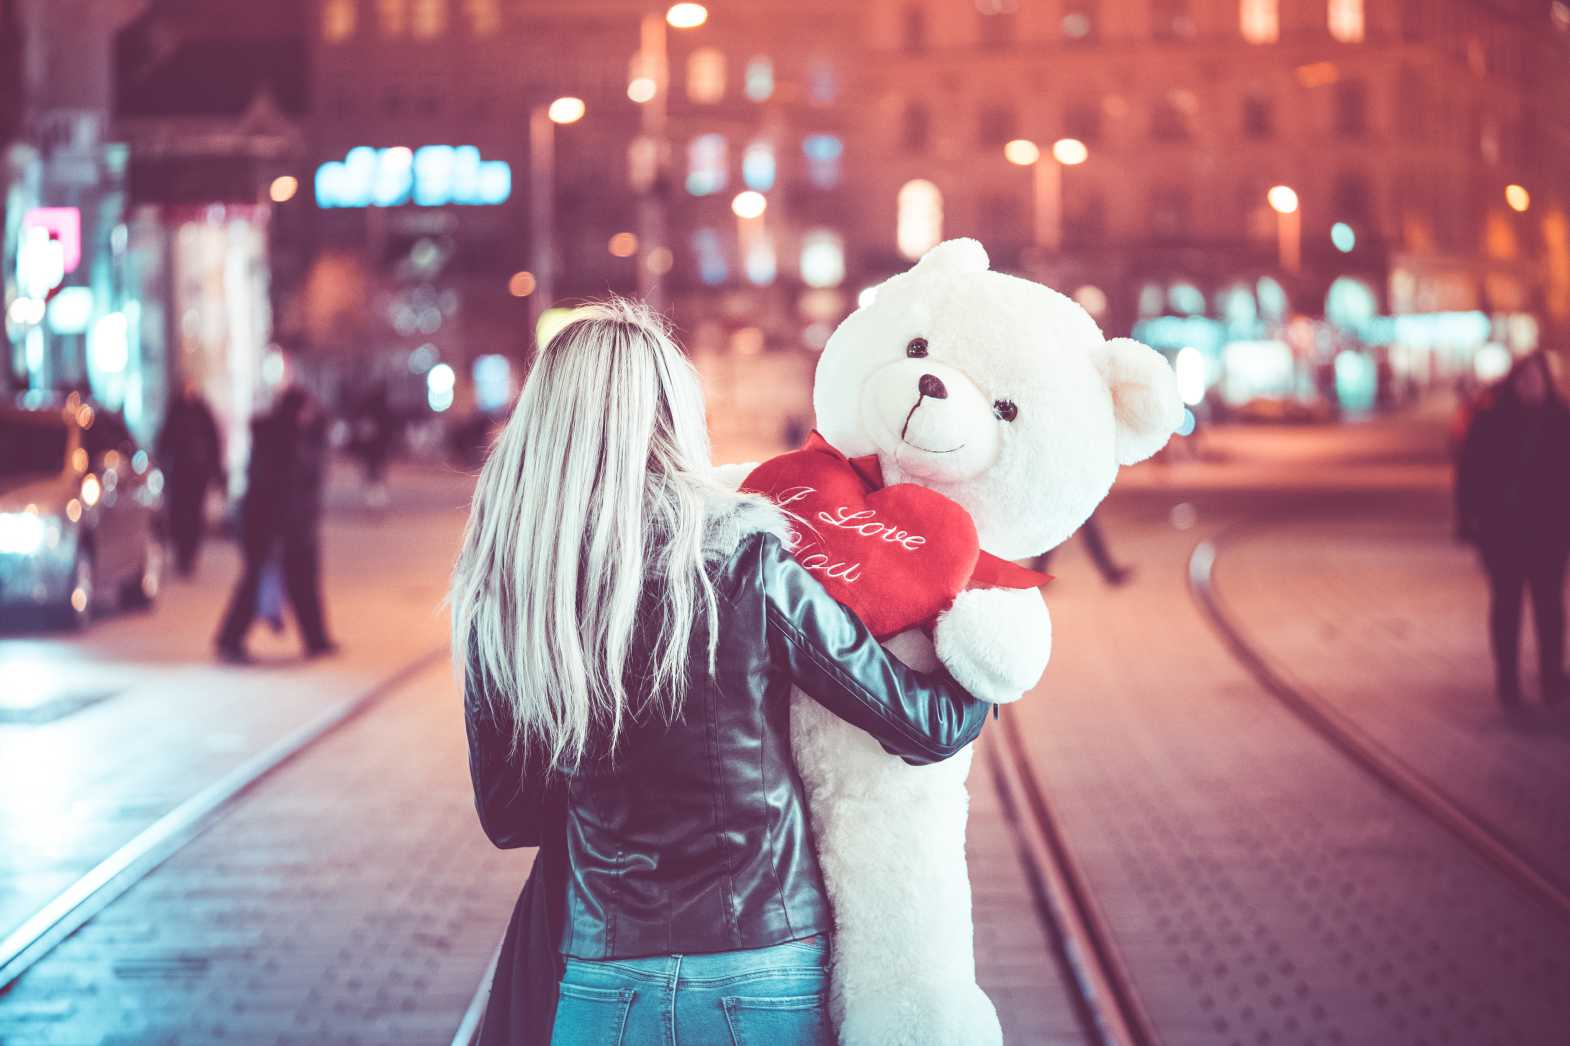 young woman walking with a big teddy bear at night free stock photos picjumbo.com  - Valentýnské fotografie zdarma – picjumbo.com